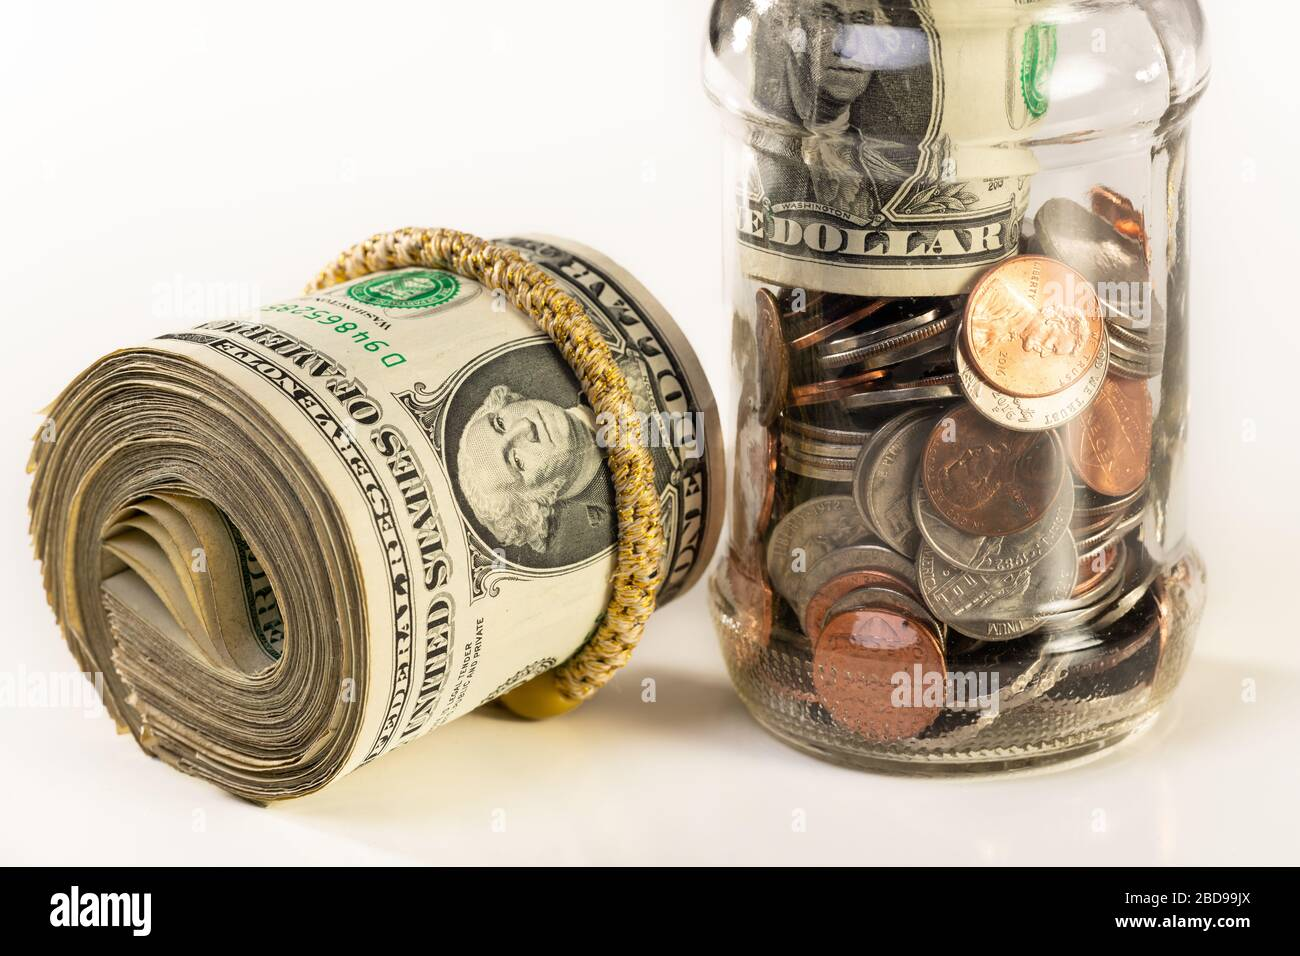 Glass jar and roll of money isolated on a white background. Stock Photo